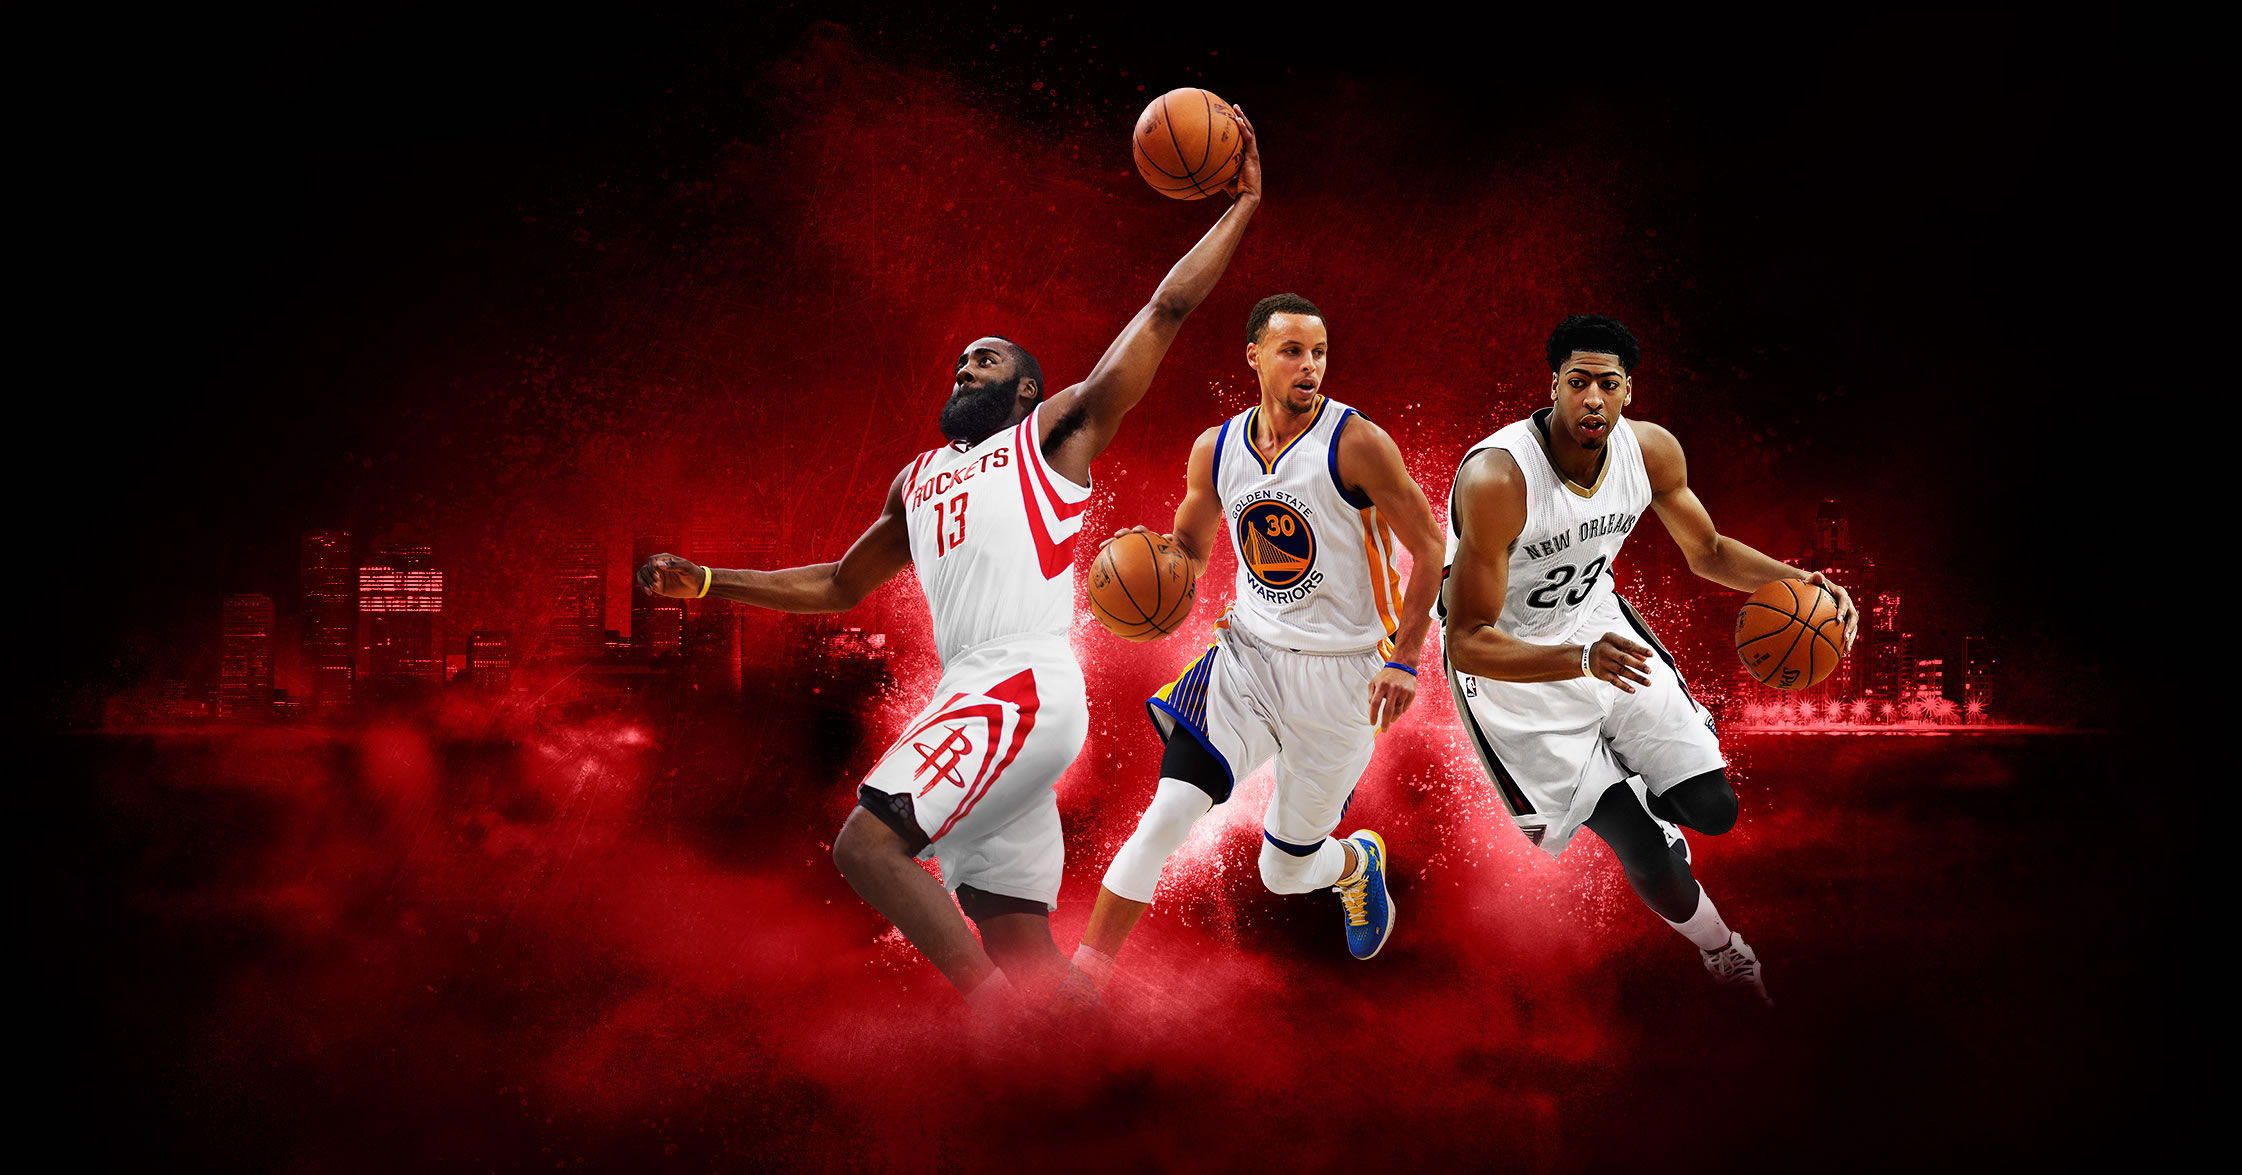 https://downloads.2kgames.com/2k/staging/datastore/1430-nba2k16_bg_5.jpg